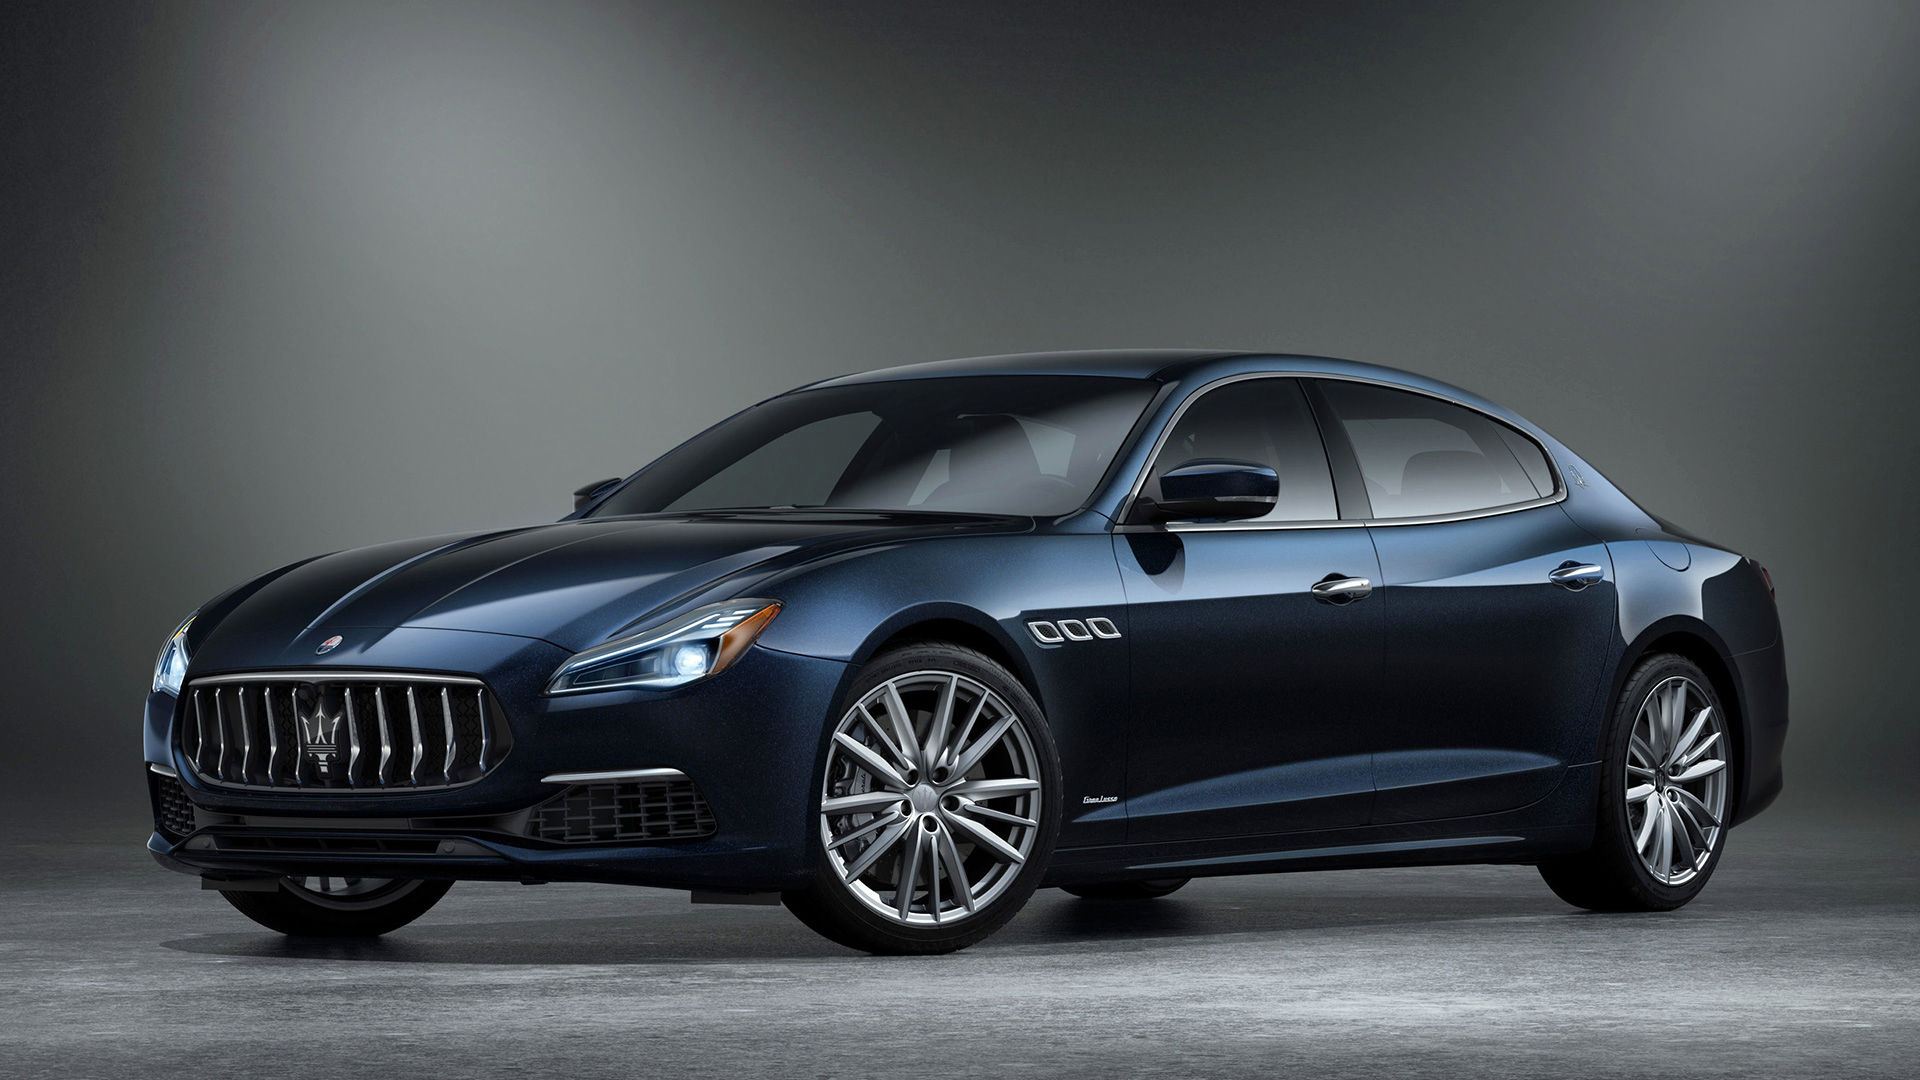 Maserati Quattroporte Edizione Nobile - side view - color Blue Nobile (royal blue)